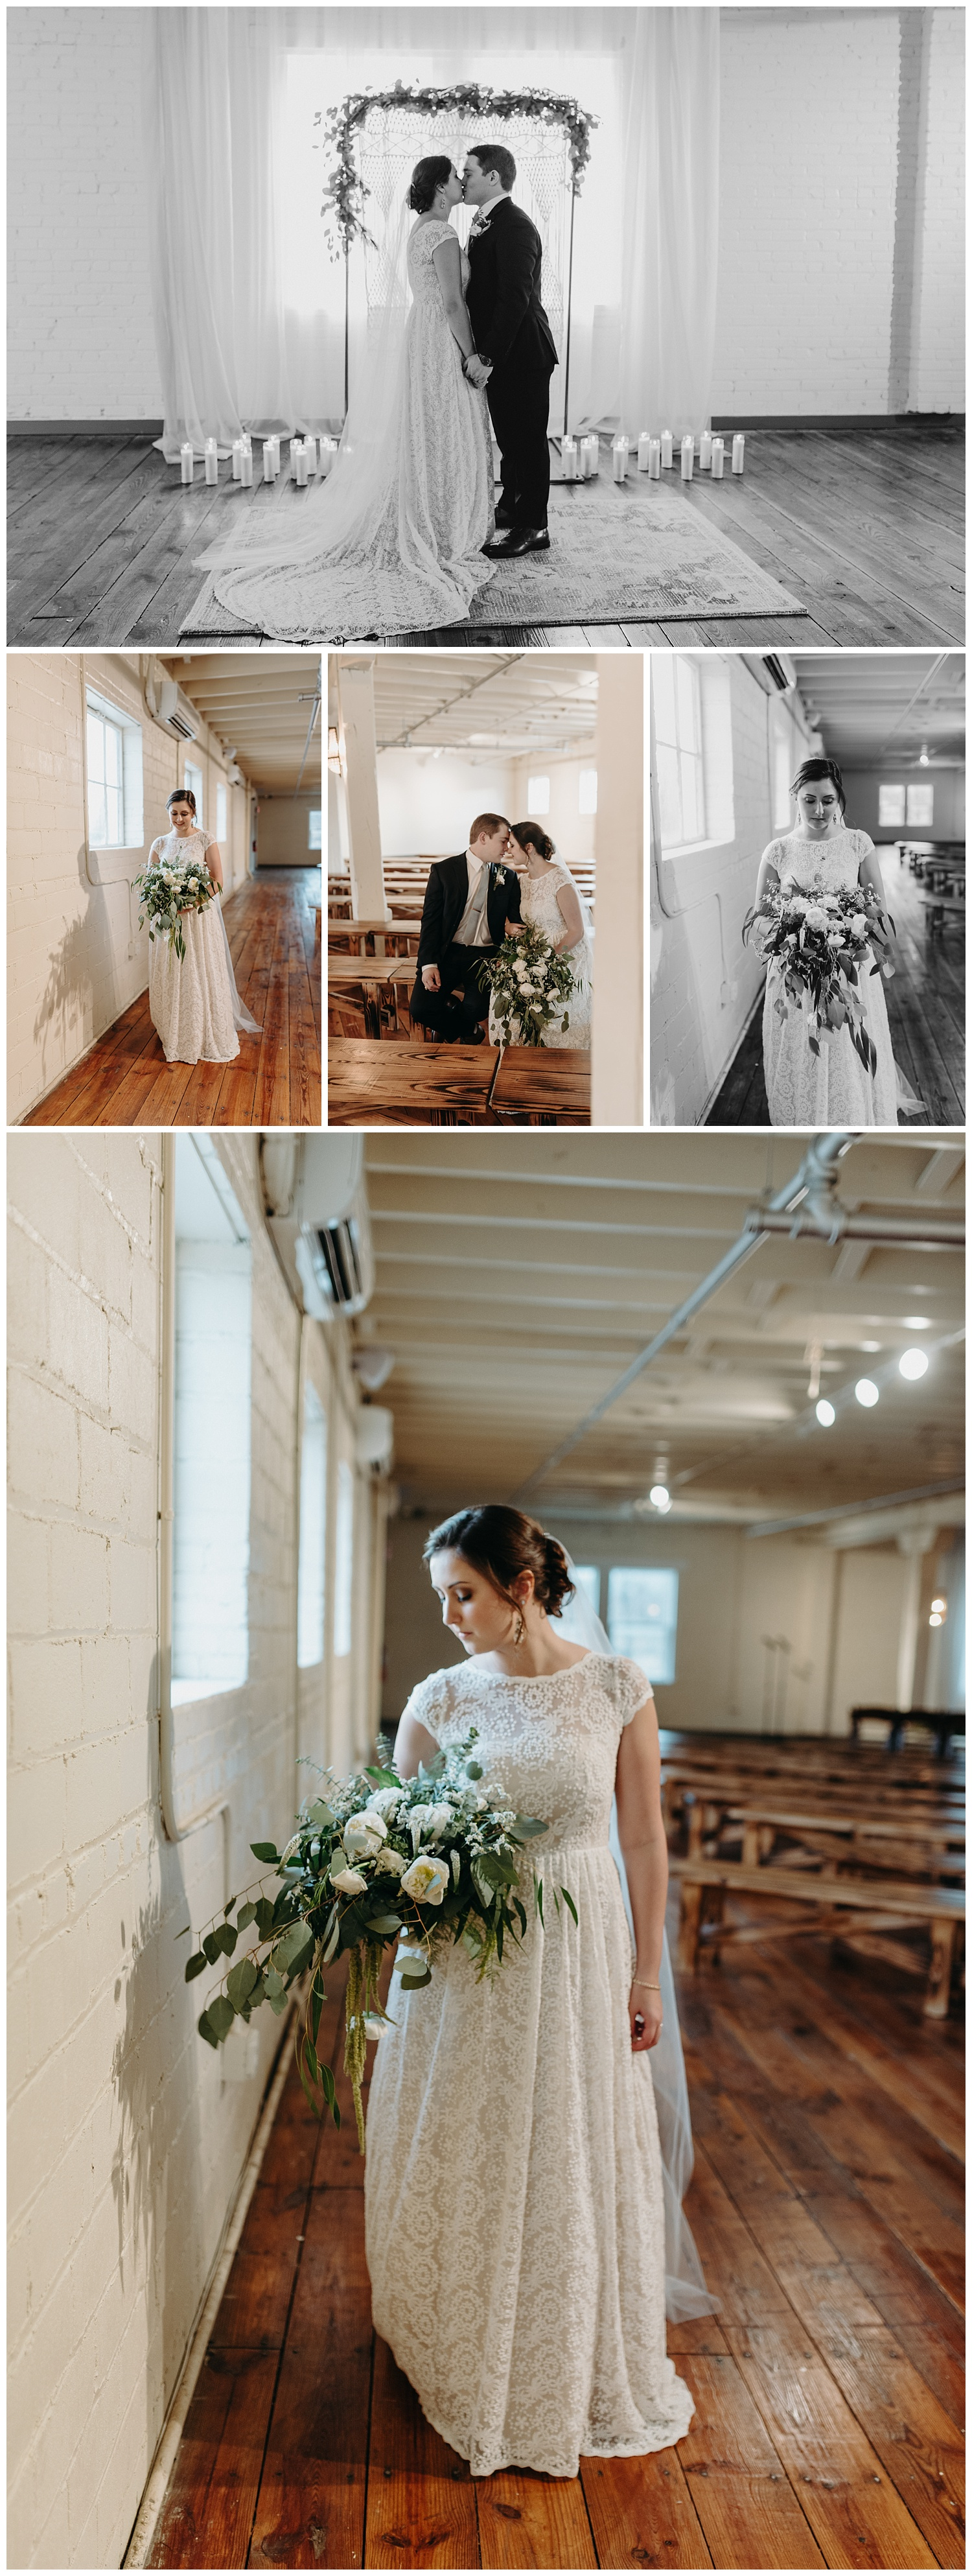 BRIK Wedding DFW